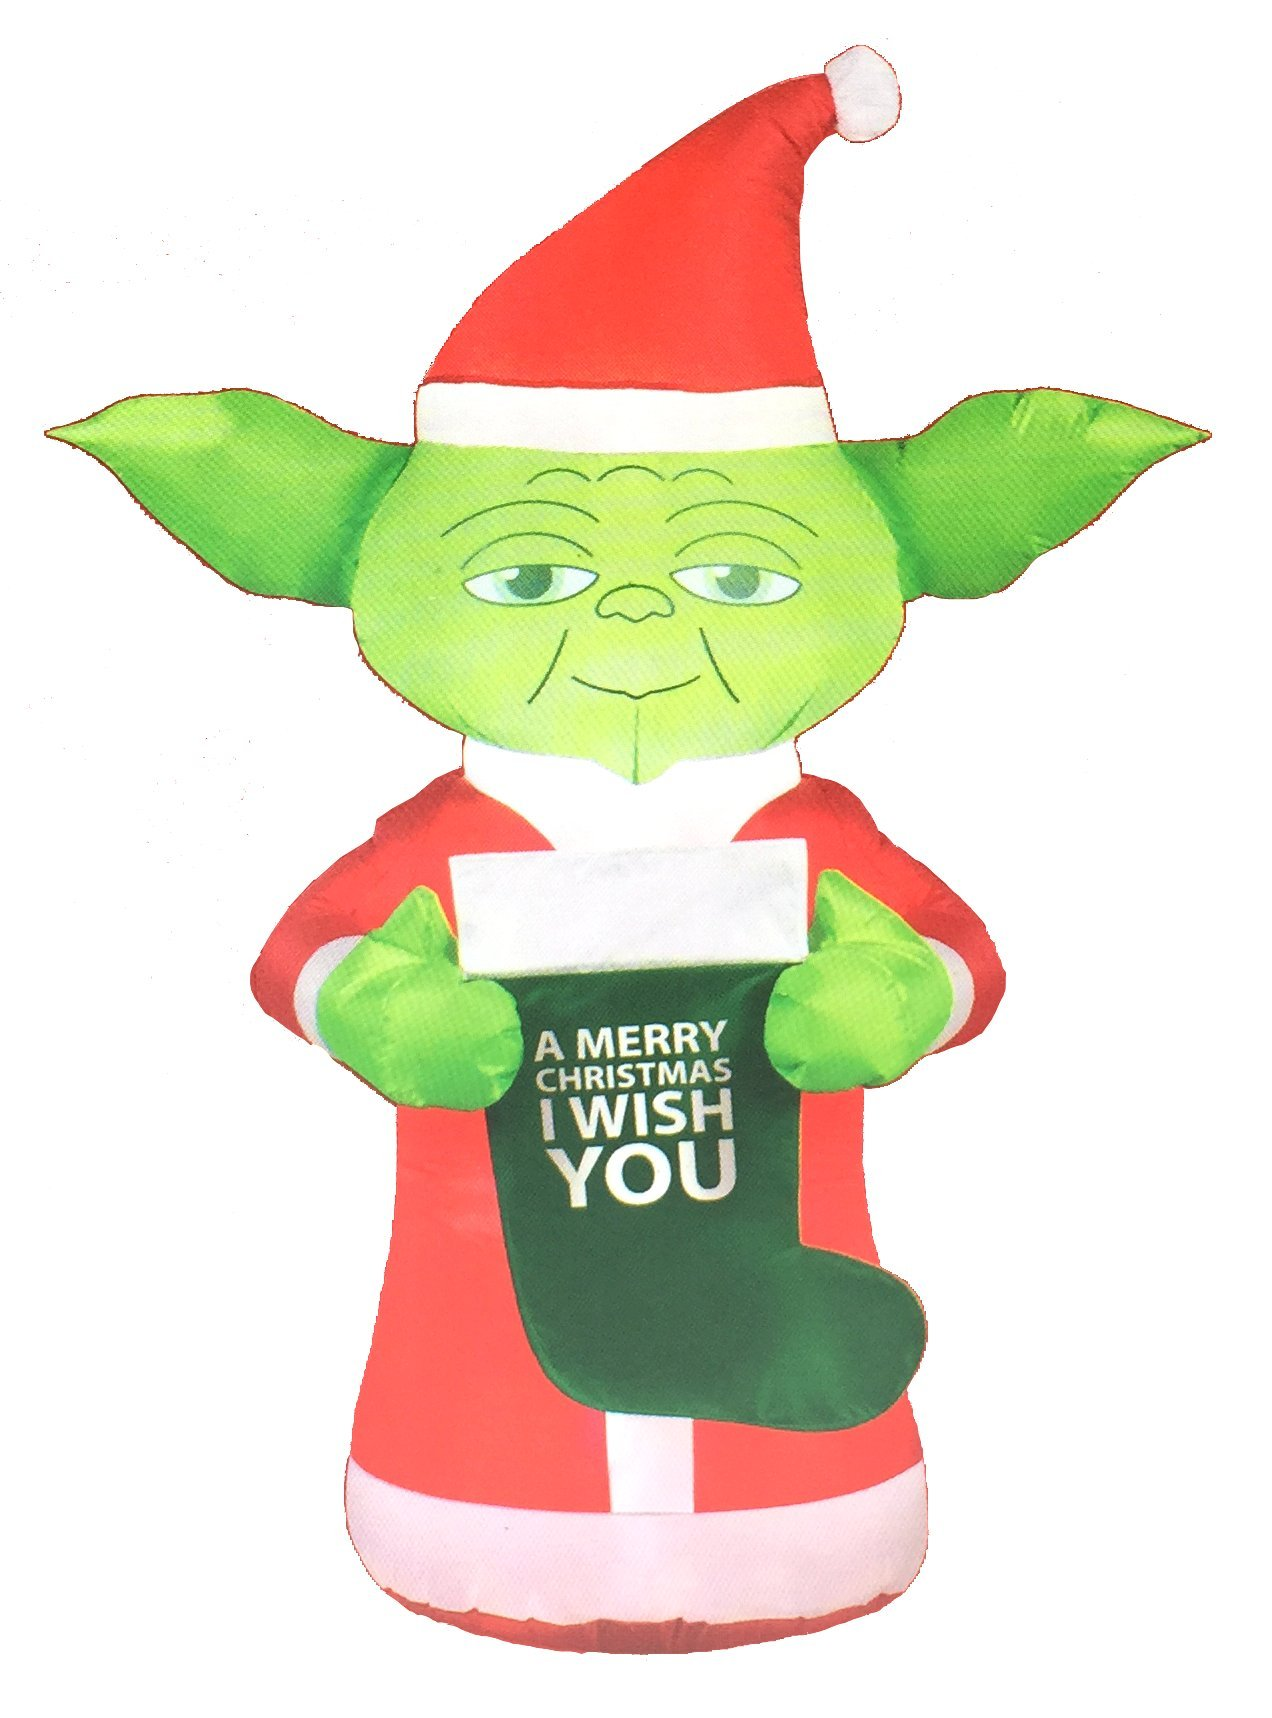 Star Wars 5ft Yoda Christmas Airblown Inflatable with LED Lights by